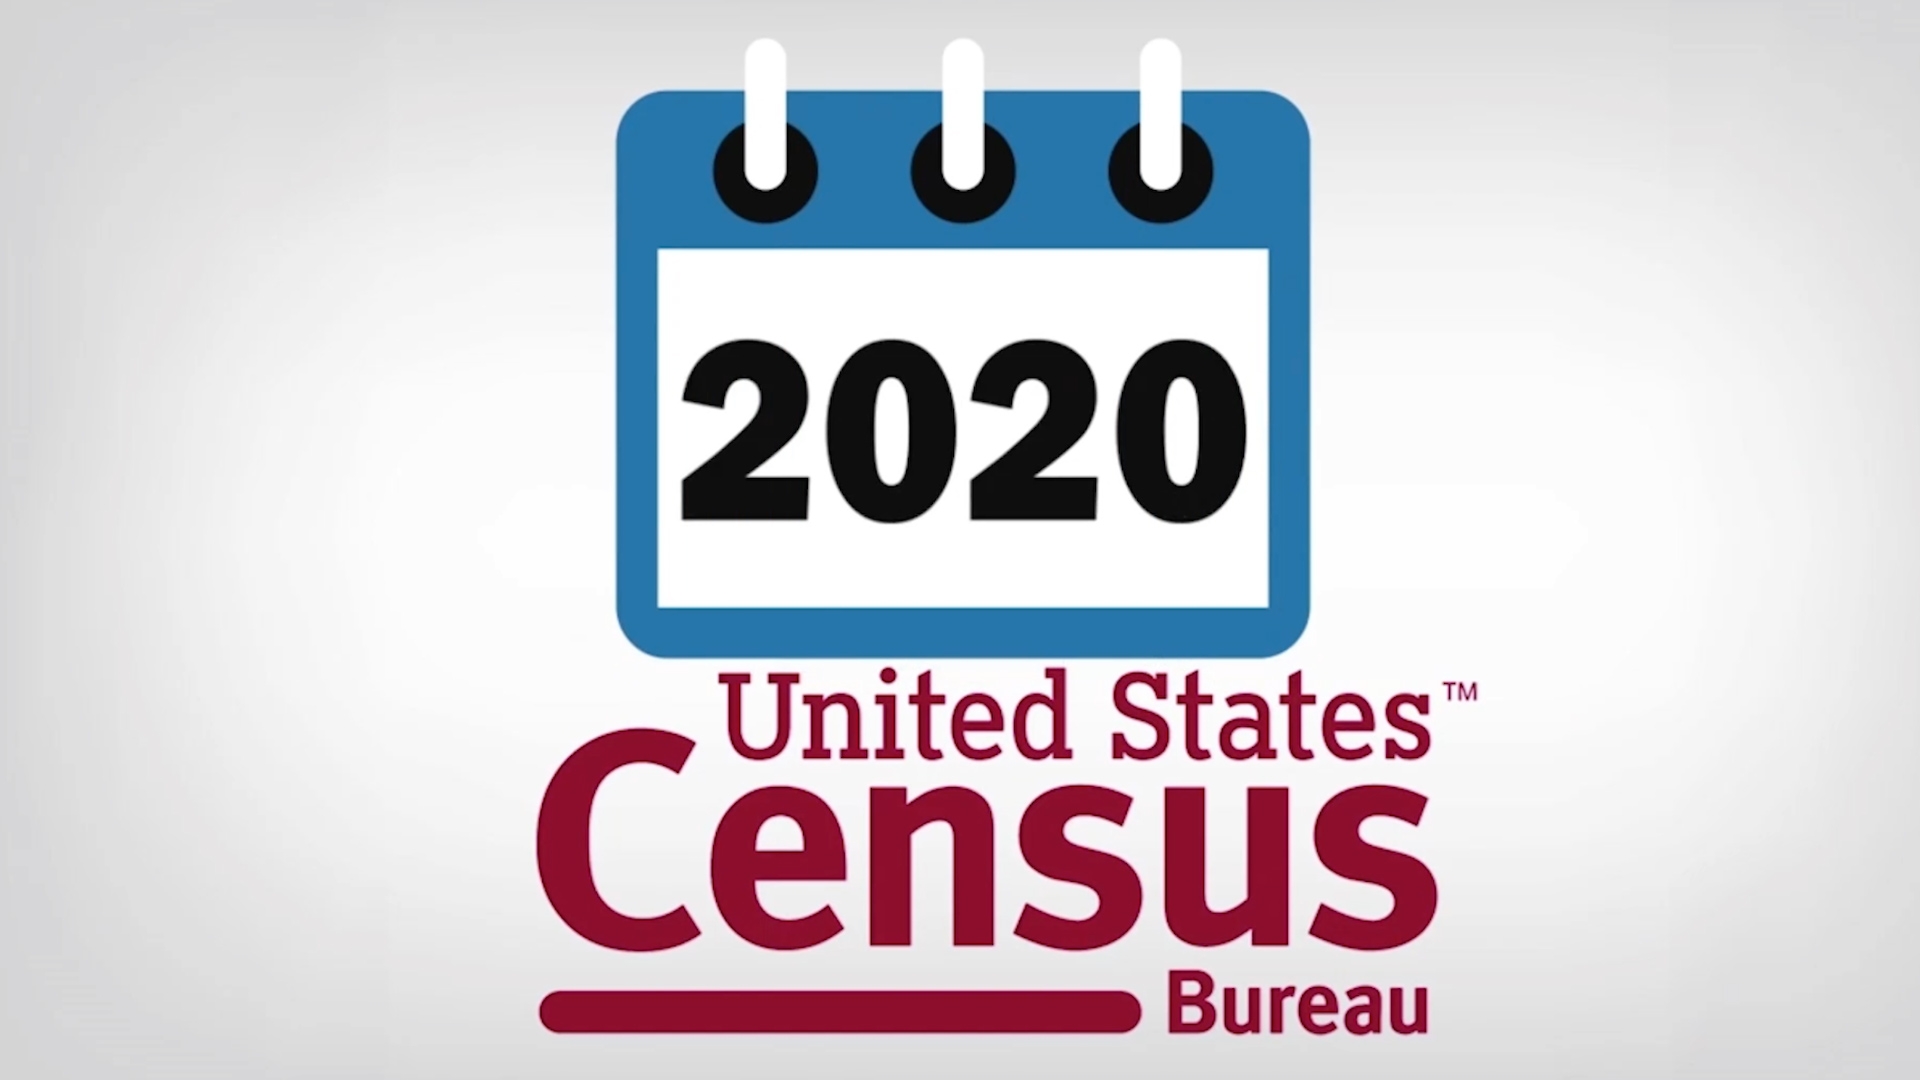 These are some of the troubles facing the U.S. Census Bureau - The on